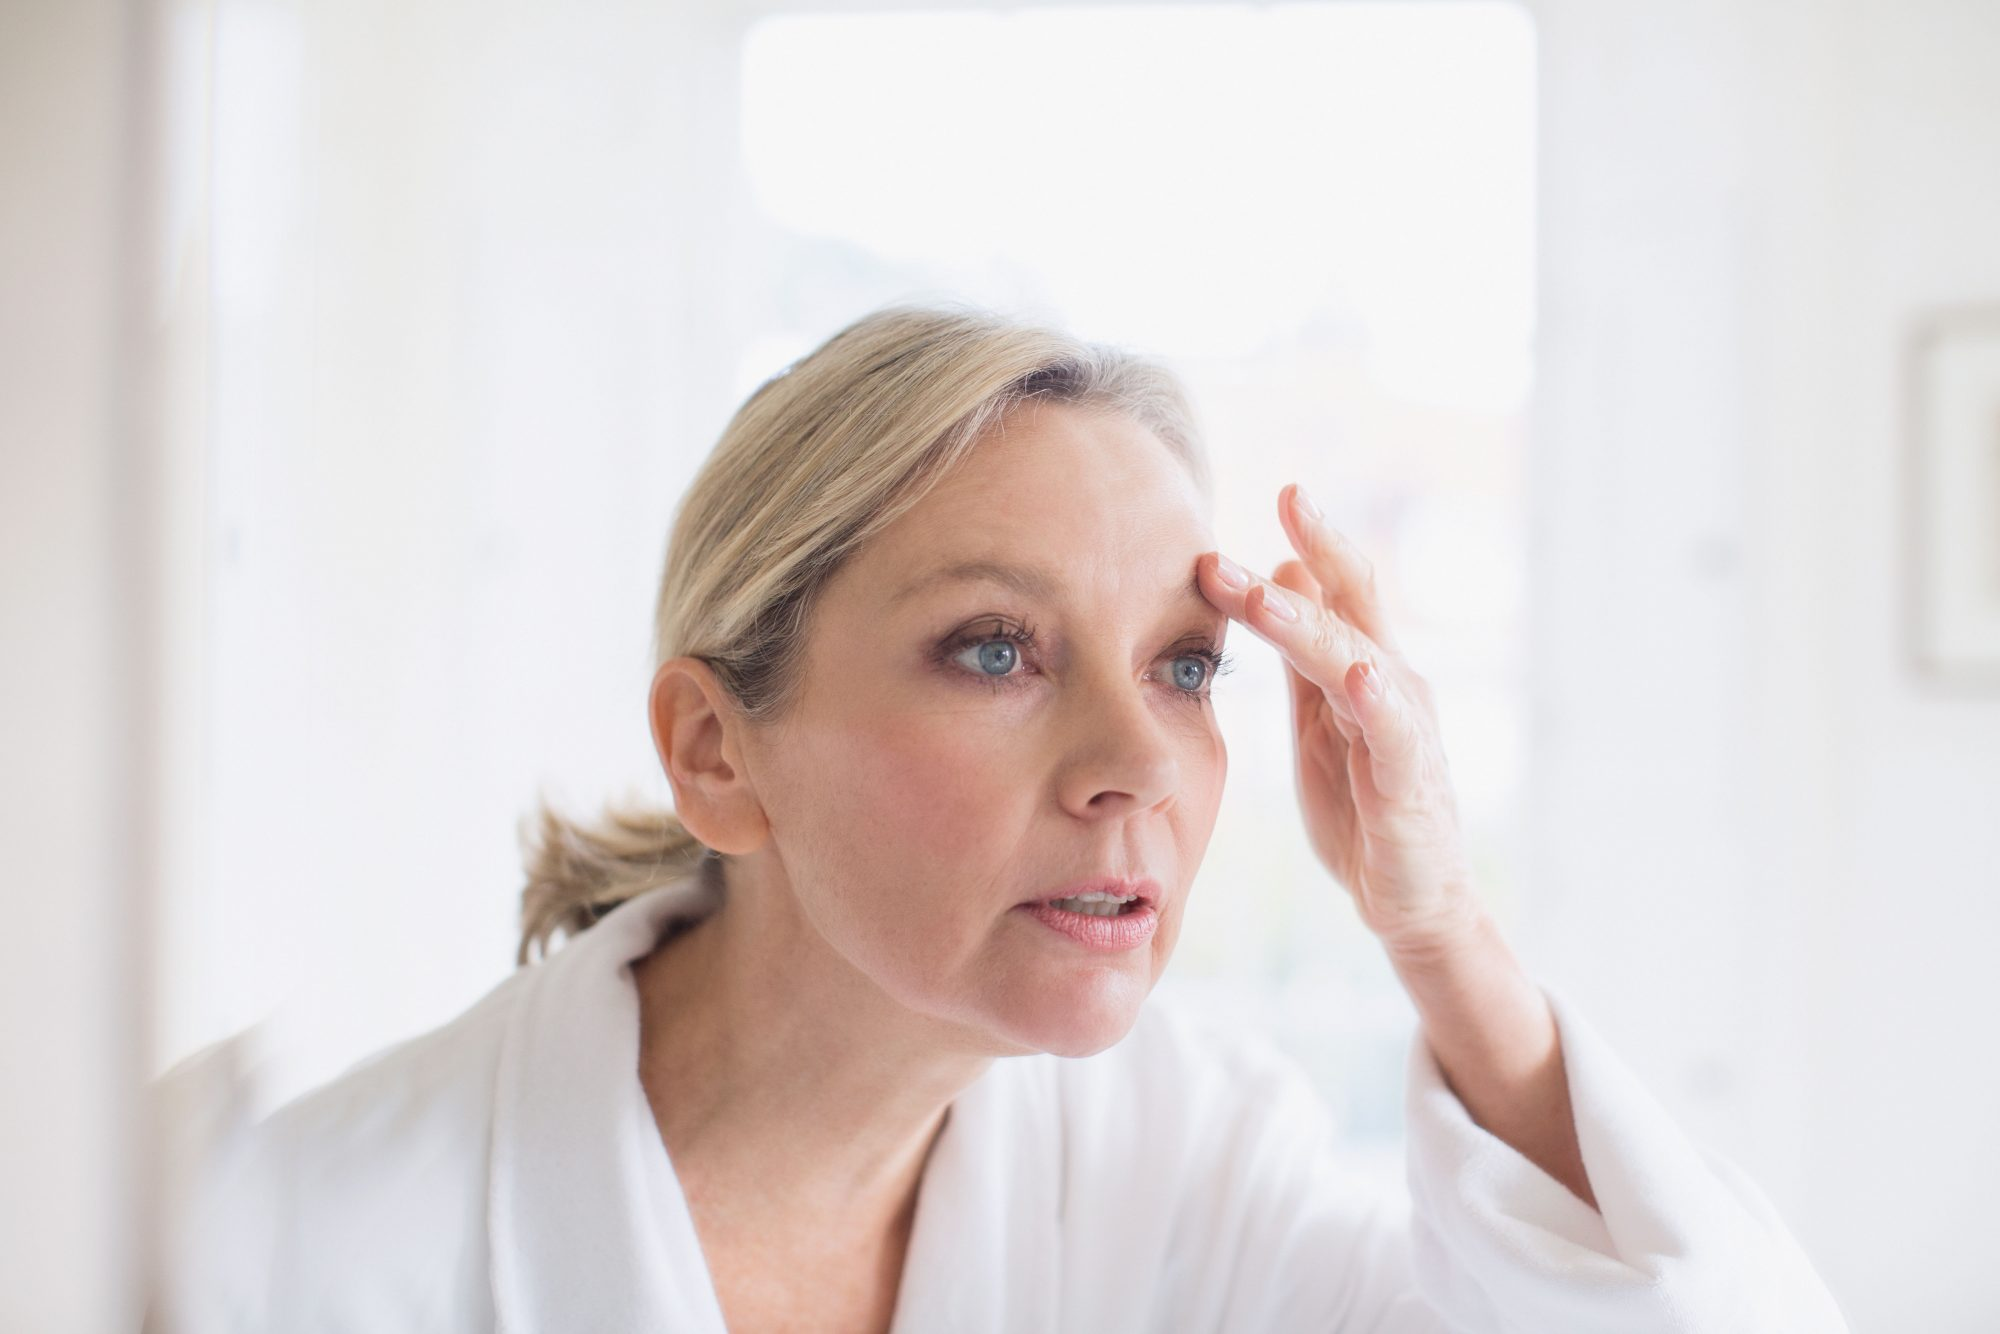 Woman Looking at Eyebrows in Mirror